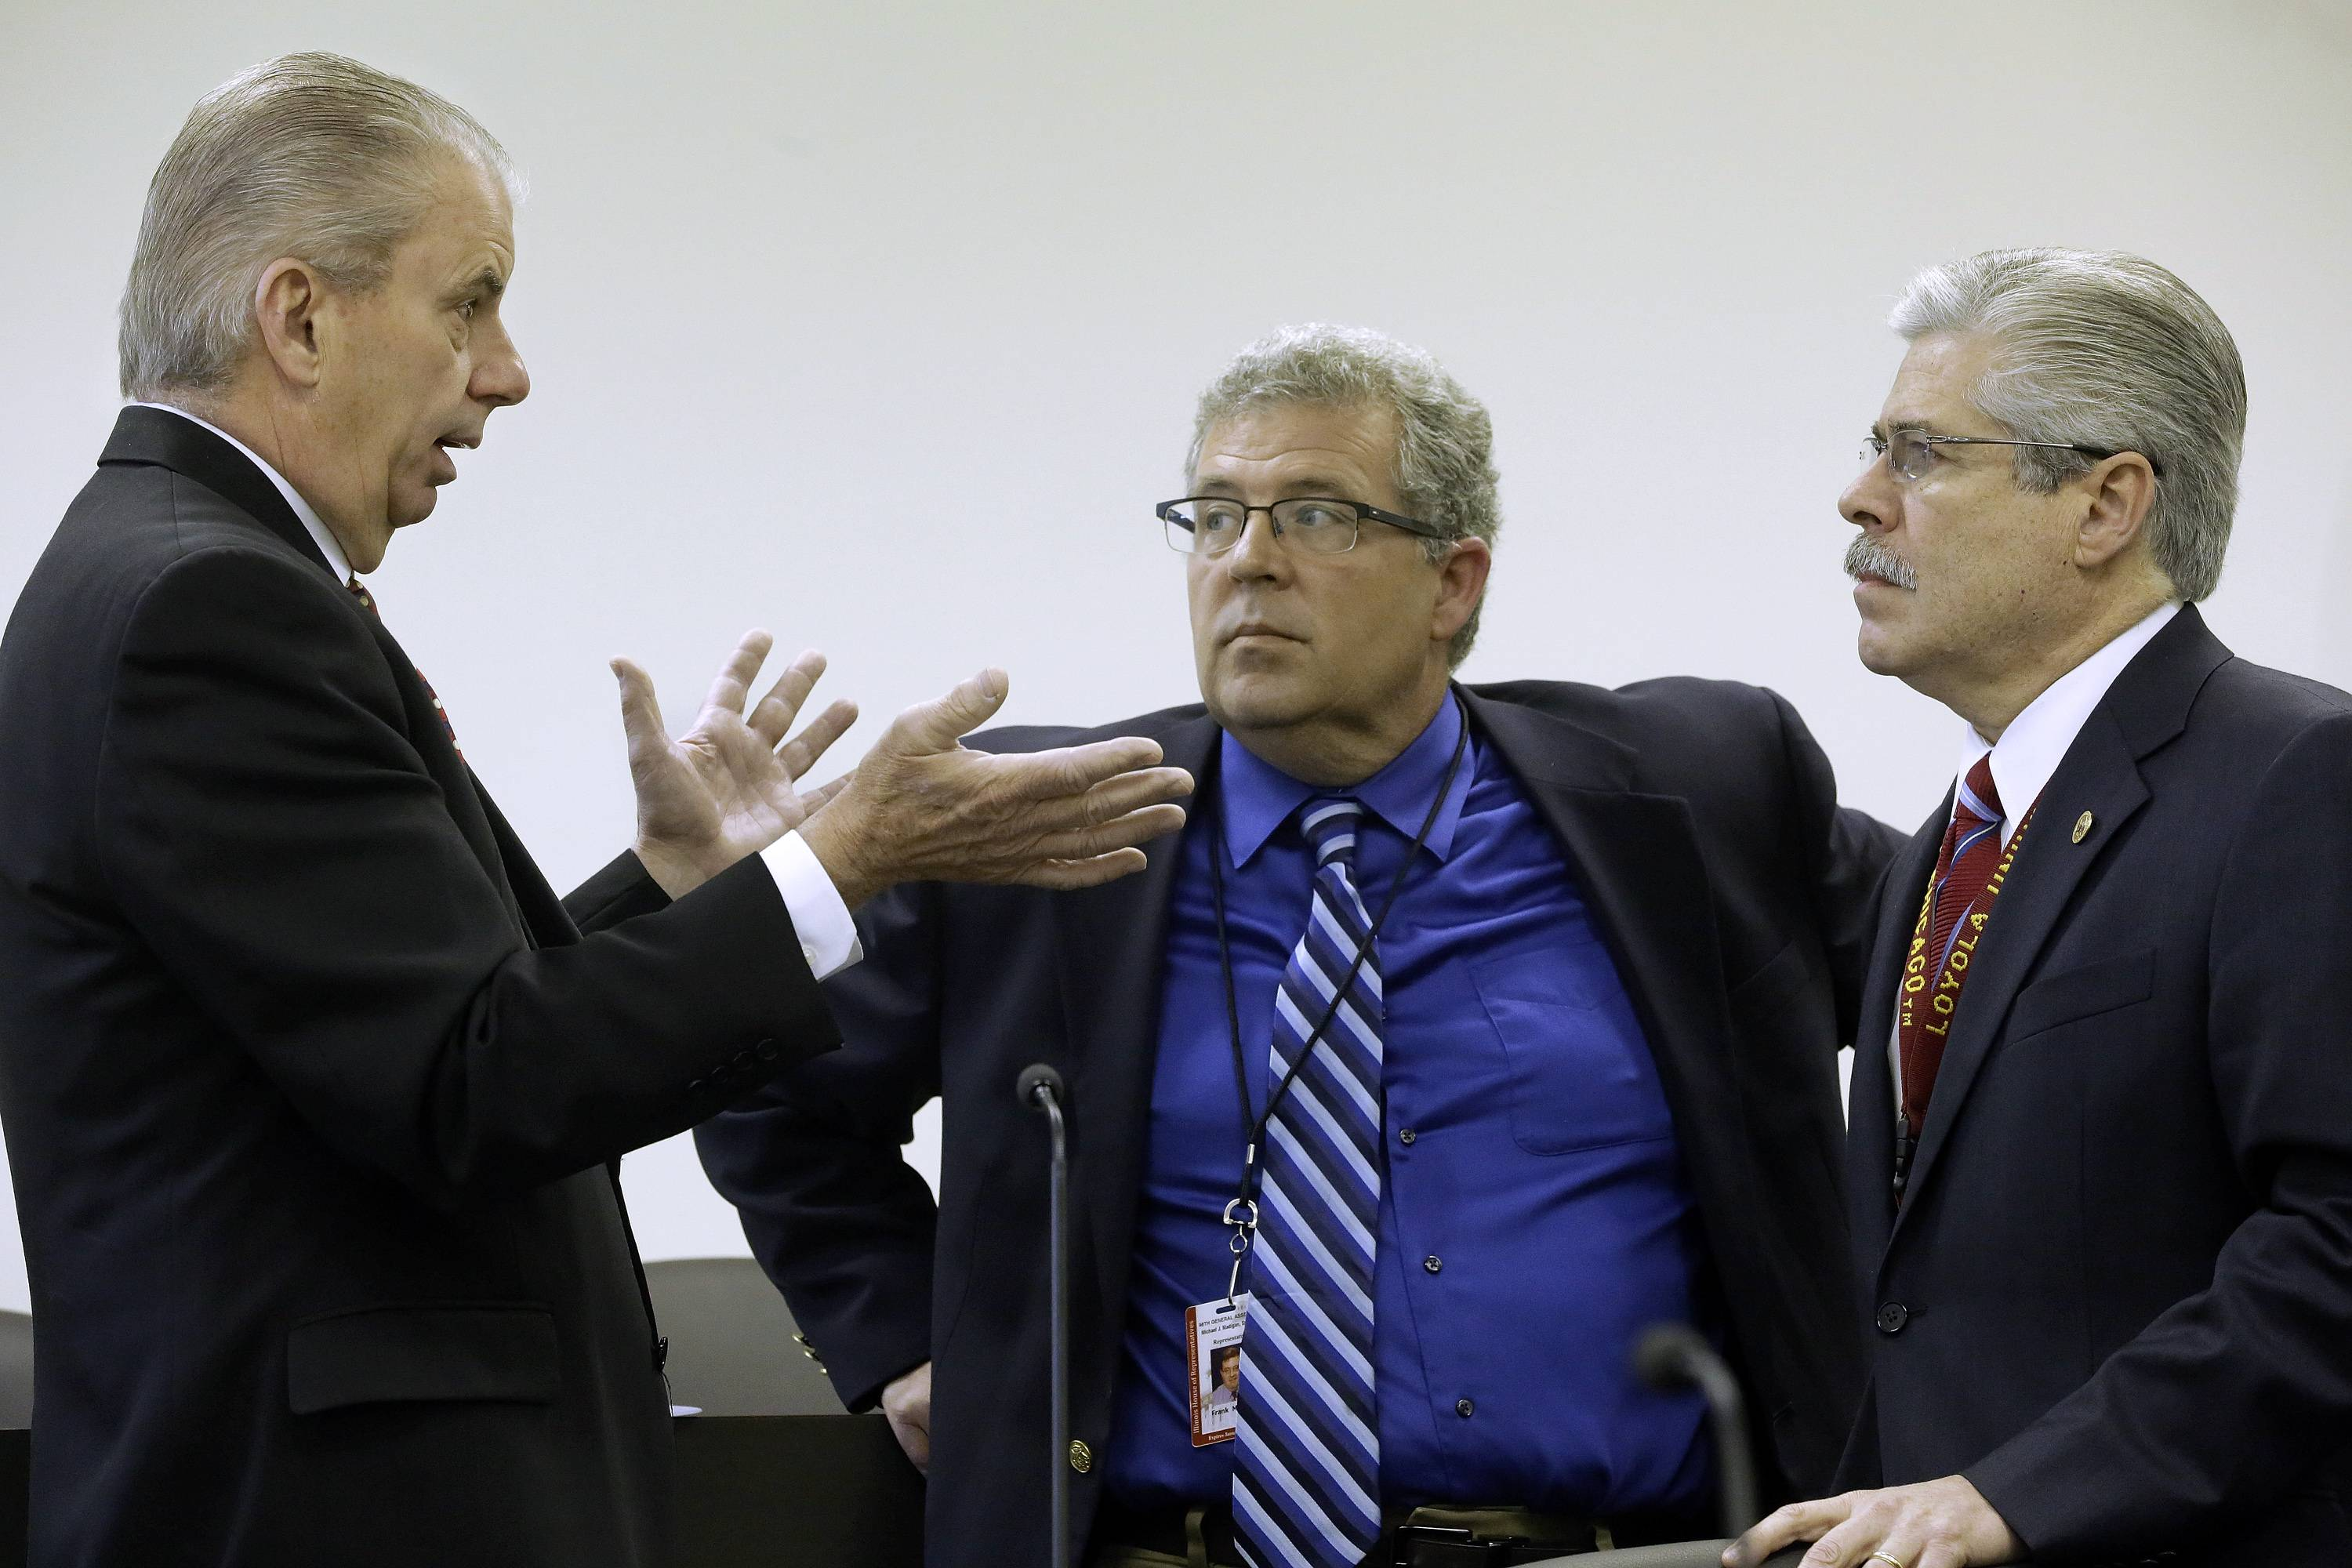 Illinois Auditor General William Holland, left, Illinois Rep. Frank J. Mautino, a Spring Valley Democrat, center, and Illinois Rep. Fred Crespo, a Hoffman Estates Democrat, right, talk at the state Capitol on Tuesday, May 6, 2014, in Springfield, Ill., during a legislative commission that helps review the use of public money and voted to grant itself subpoena powers to investigate Illinois Gov. Pat Quinn's troubled anti-violence program. The Legislative Audit Commission voted in favor of the Republican state Sen. Jason Barickman's motion by a 10-1 vote.